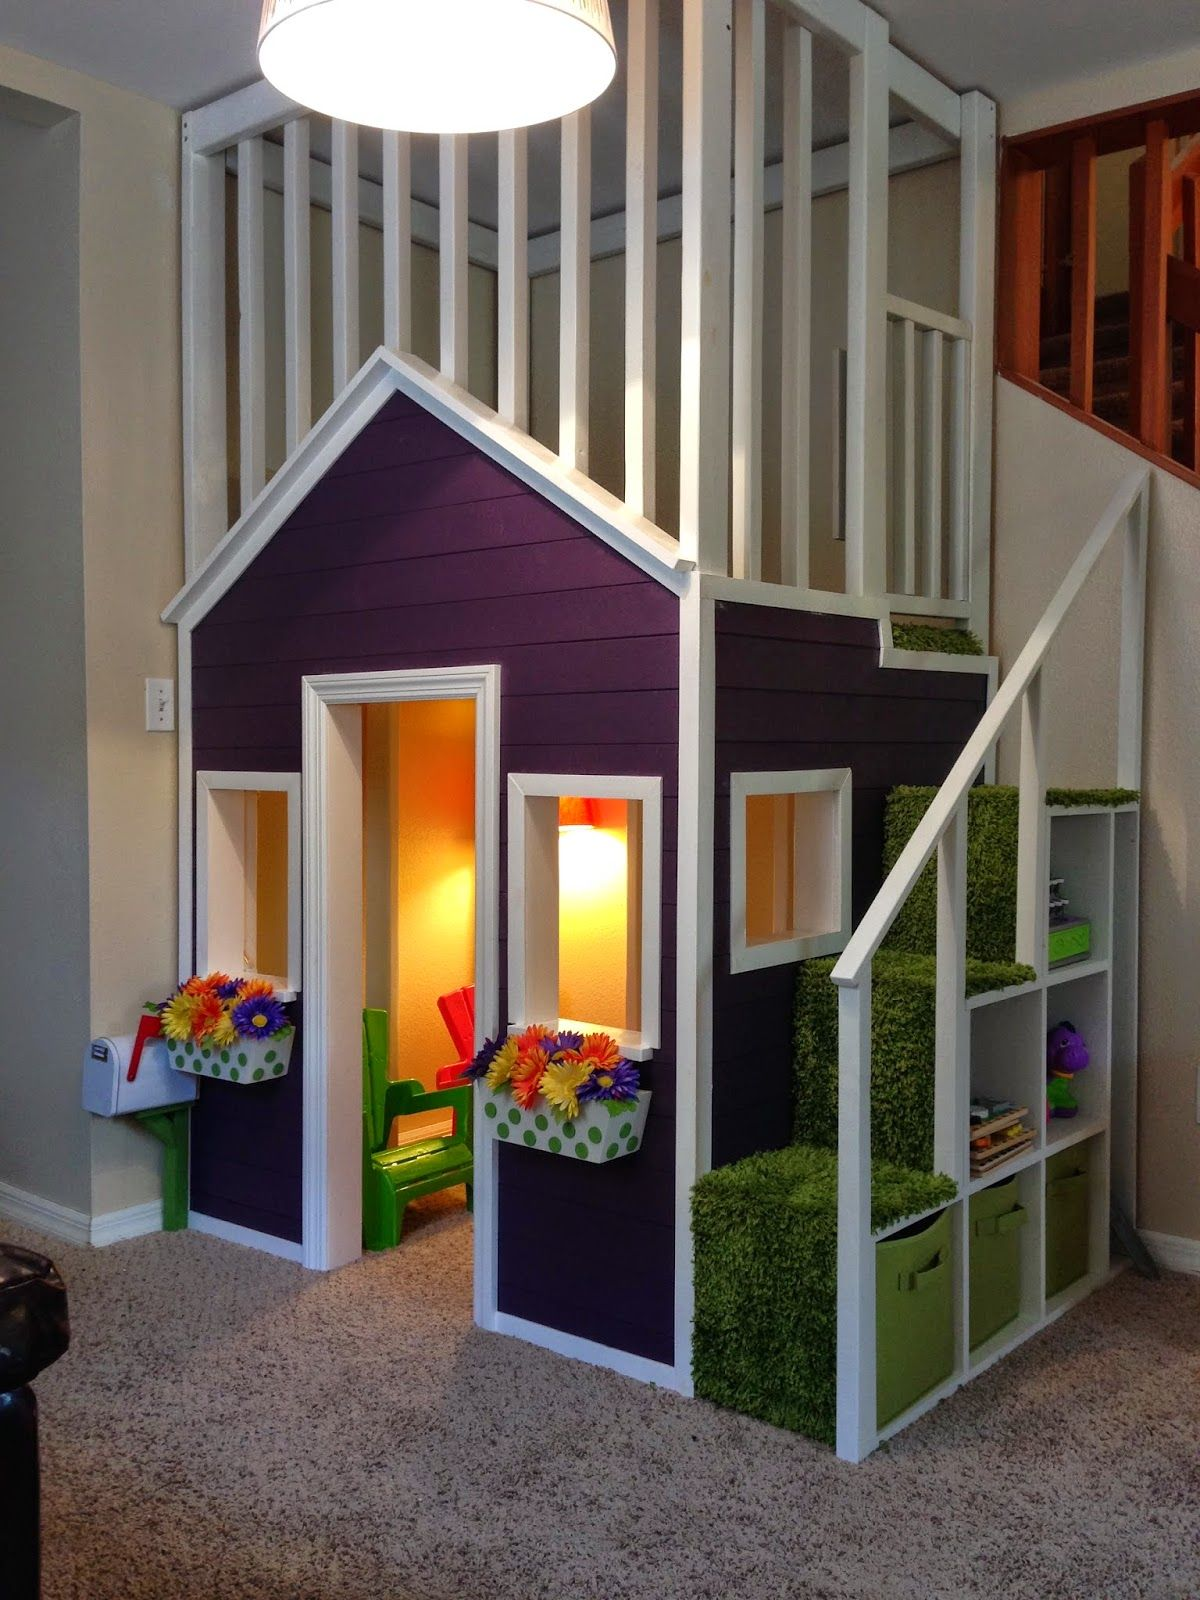 Loft bed with slide and storage  indoor playhouse with upstairs loft and cube storage stairs  Kids